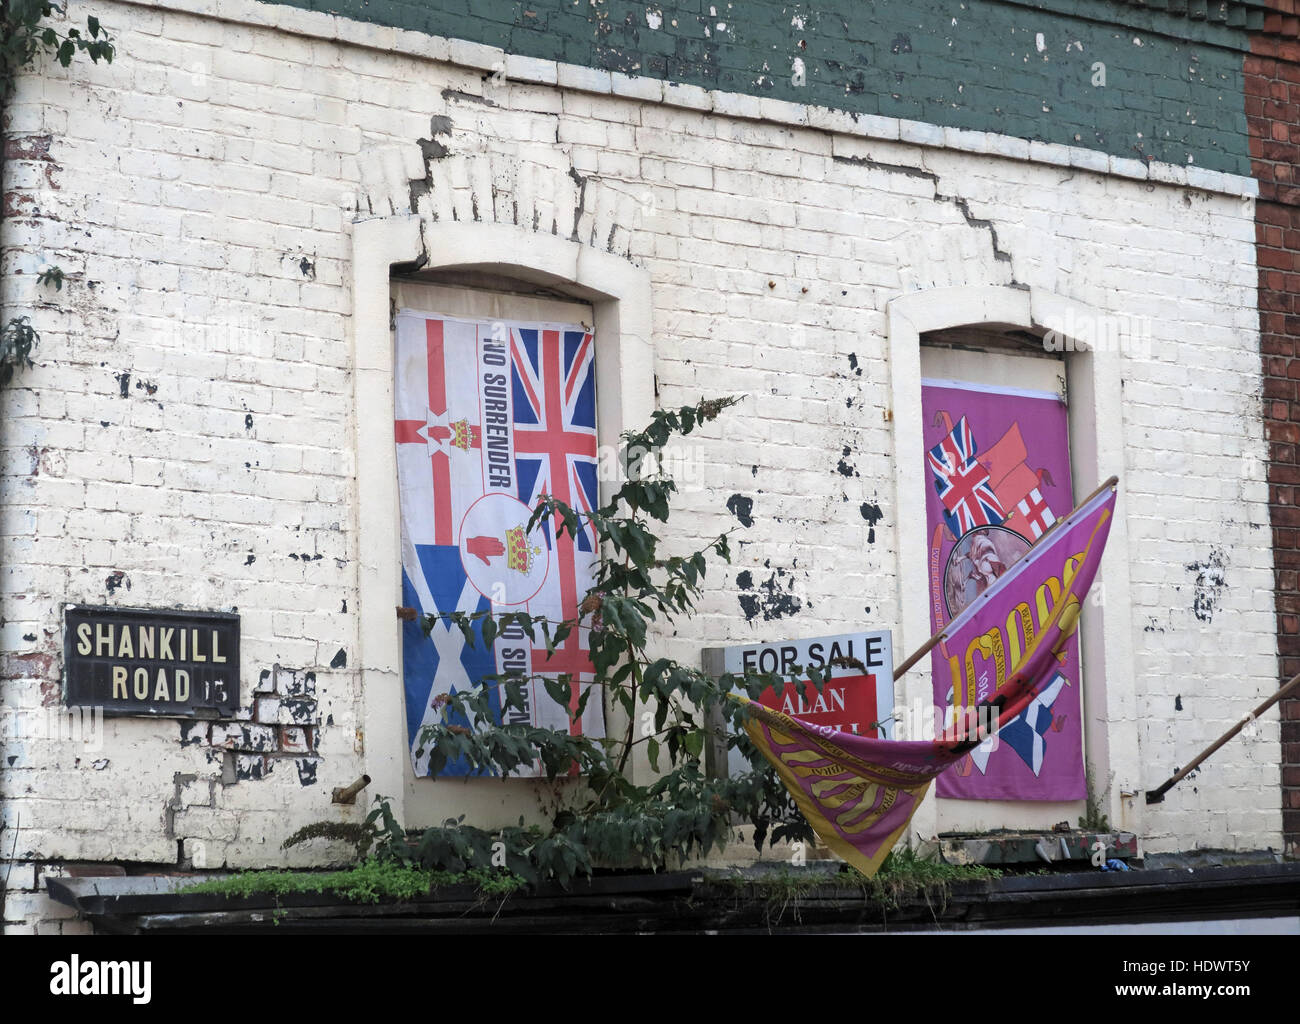 Red hand,Ulster,memorial,UFF,Unionist,mural,off,Shankill,rd,Road,West Belfast,Northern Ireland,UK,Ireland,fighter,fighting,flag,union,jack,sign,for,sale,poor,decay,decayed,derelict,rundown,run,down,Union Jack,road sign,Shankill Road Sign,For Sale,GoTonySmith,@HotpixUK,Tony,Smith,UK,GB,Great,Britain,United,Kingdom,Irish,British,Ireland,problem,with,problem with,issue with,NI,Northern,Northern Ireland,Belfast,City,Centre,Art,Artists,the,troubles,The Troubles,Good Friday Agreement,Peace,honour,painting,wall,walls,tribute,Unionist,unionism,Protestant,community,Fight,Justice,West,Beal,feirste,martyrs,social,tour,tourism,tourists,urban,six,counties,6,backdrop,county,Antrim,UVF,DUP,British,GB,Empire,Buy Pictures of,Buy Images Of,Images of,Stock Images,Tony Smith,United Kingdom,Great Britain,British Isles,Belfast protestant community,Peoples army